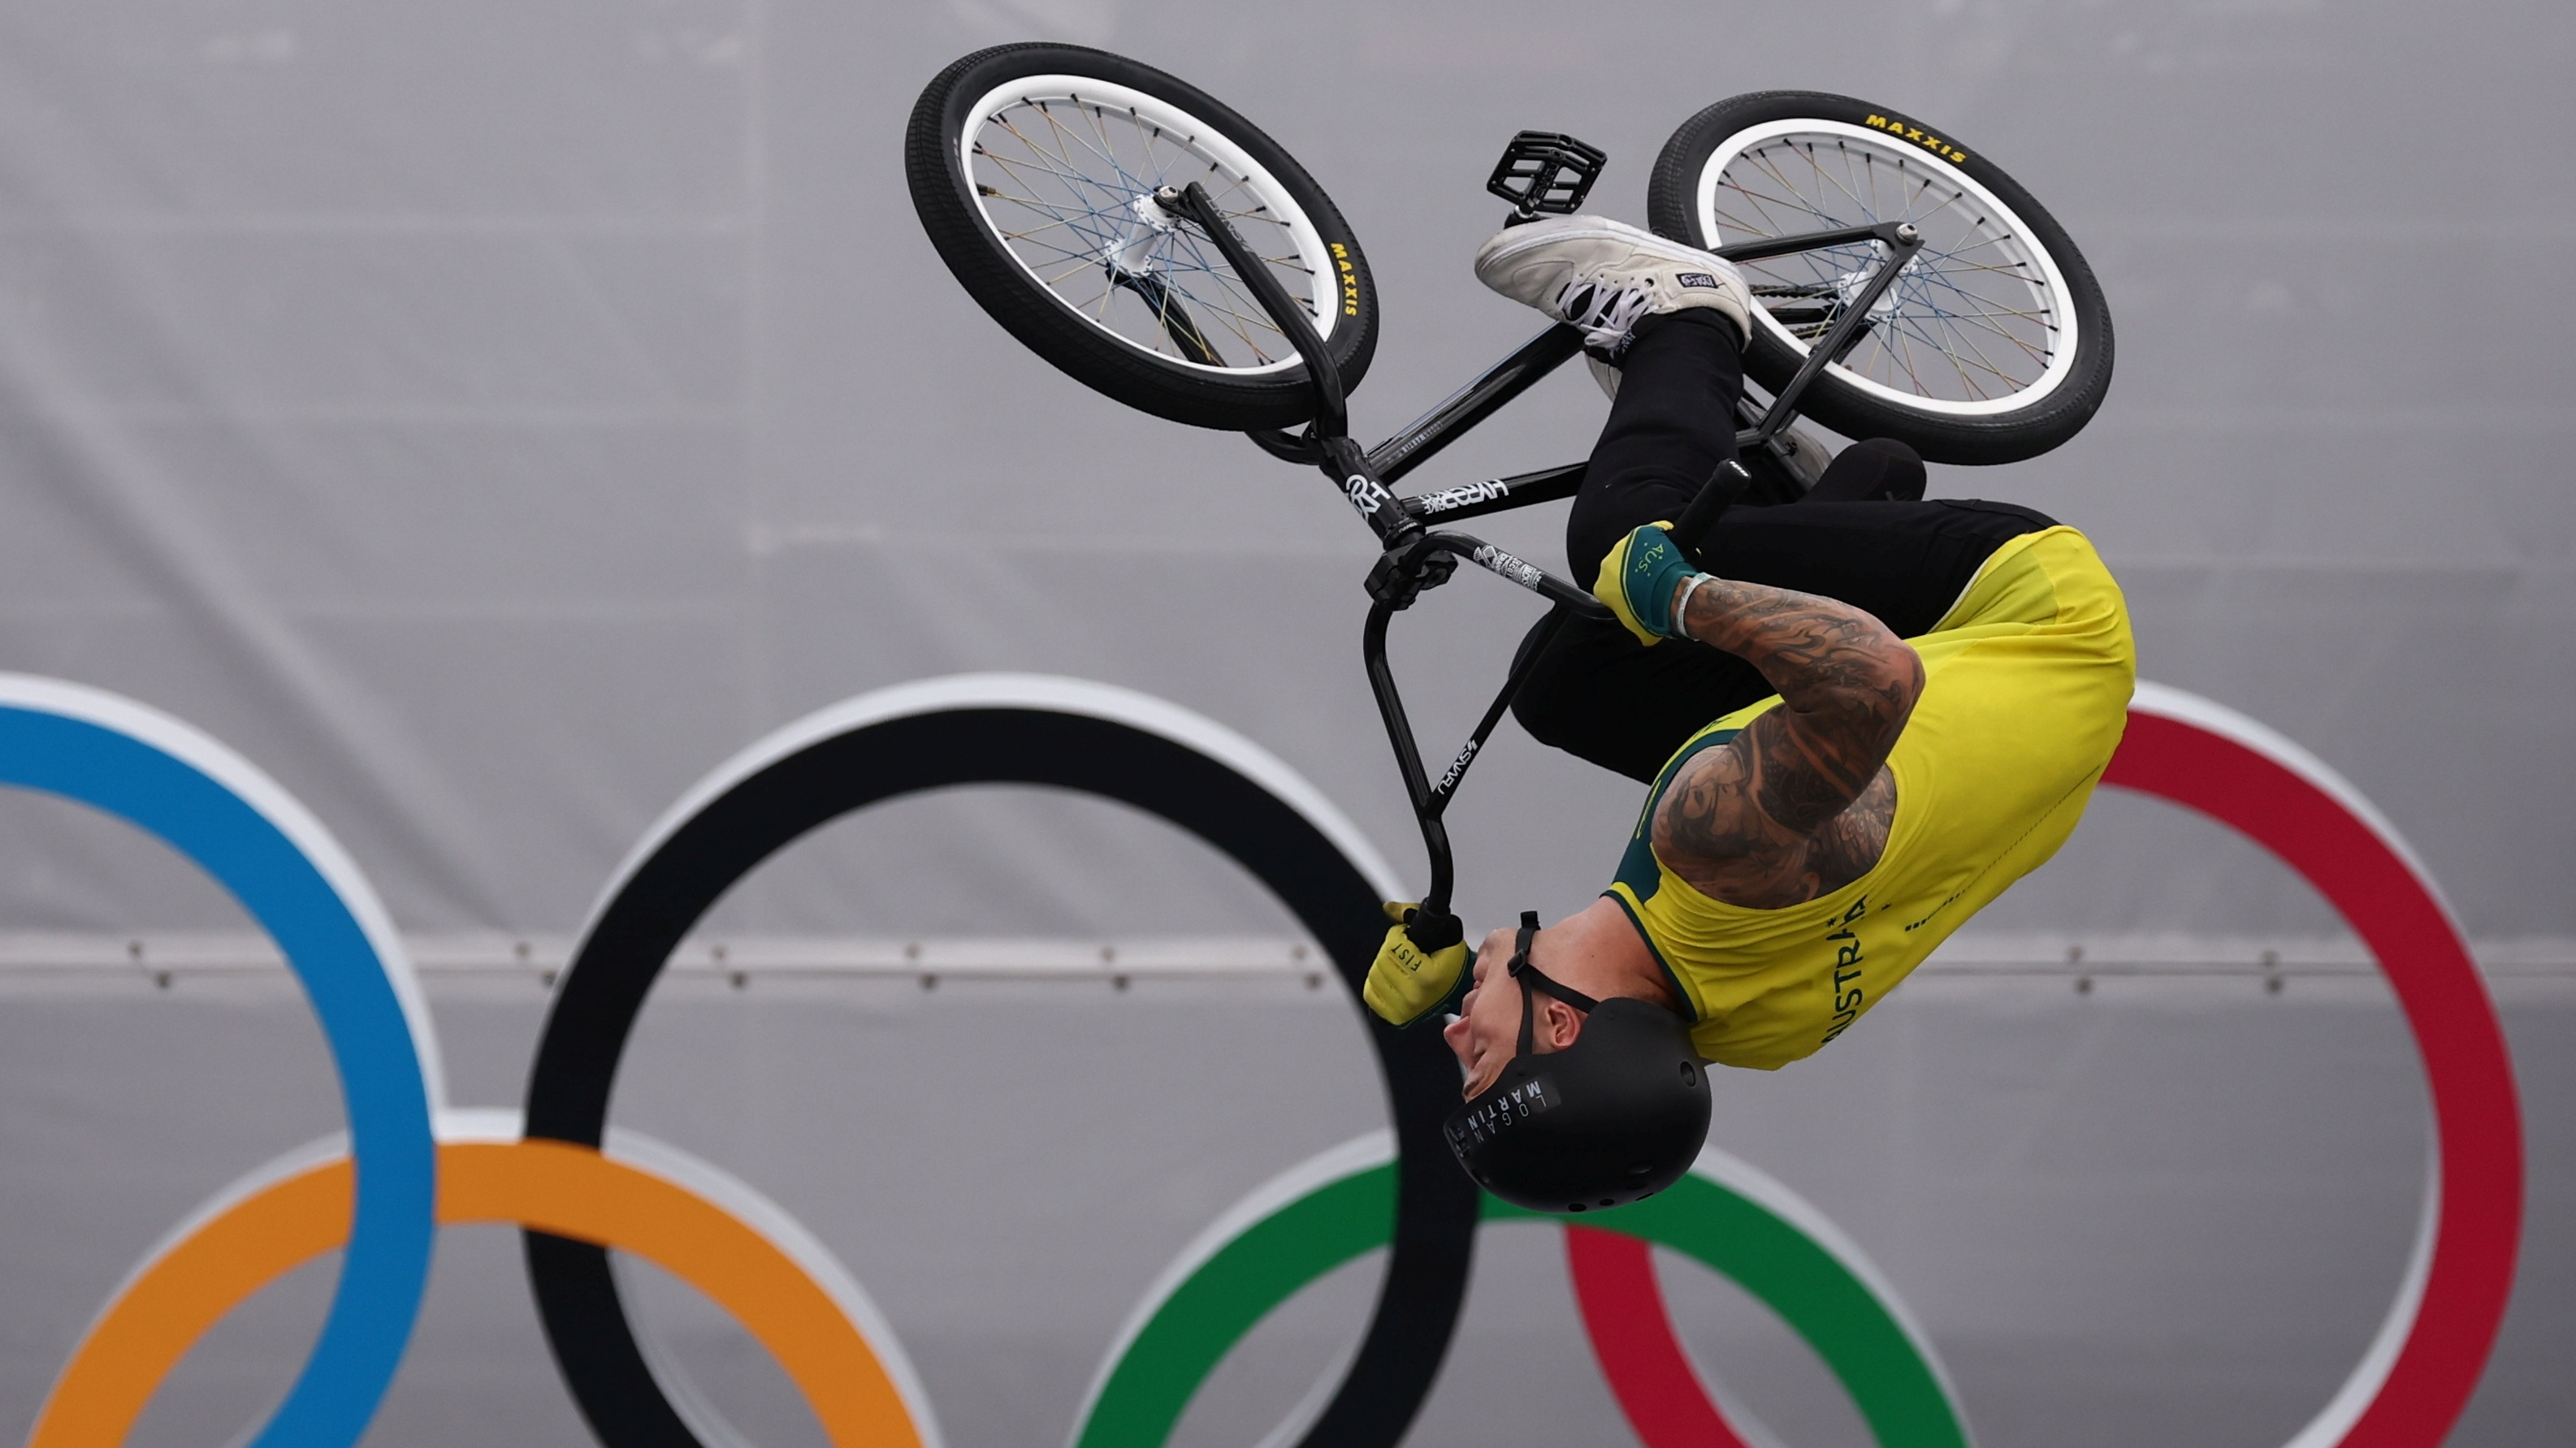 Cycling-BMX freestylers soar on Games debut | Reuters